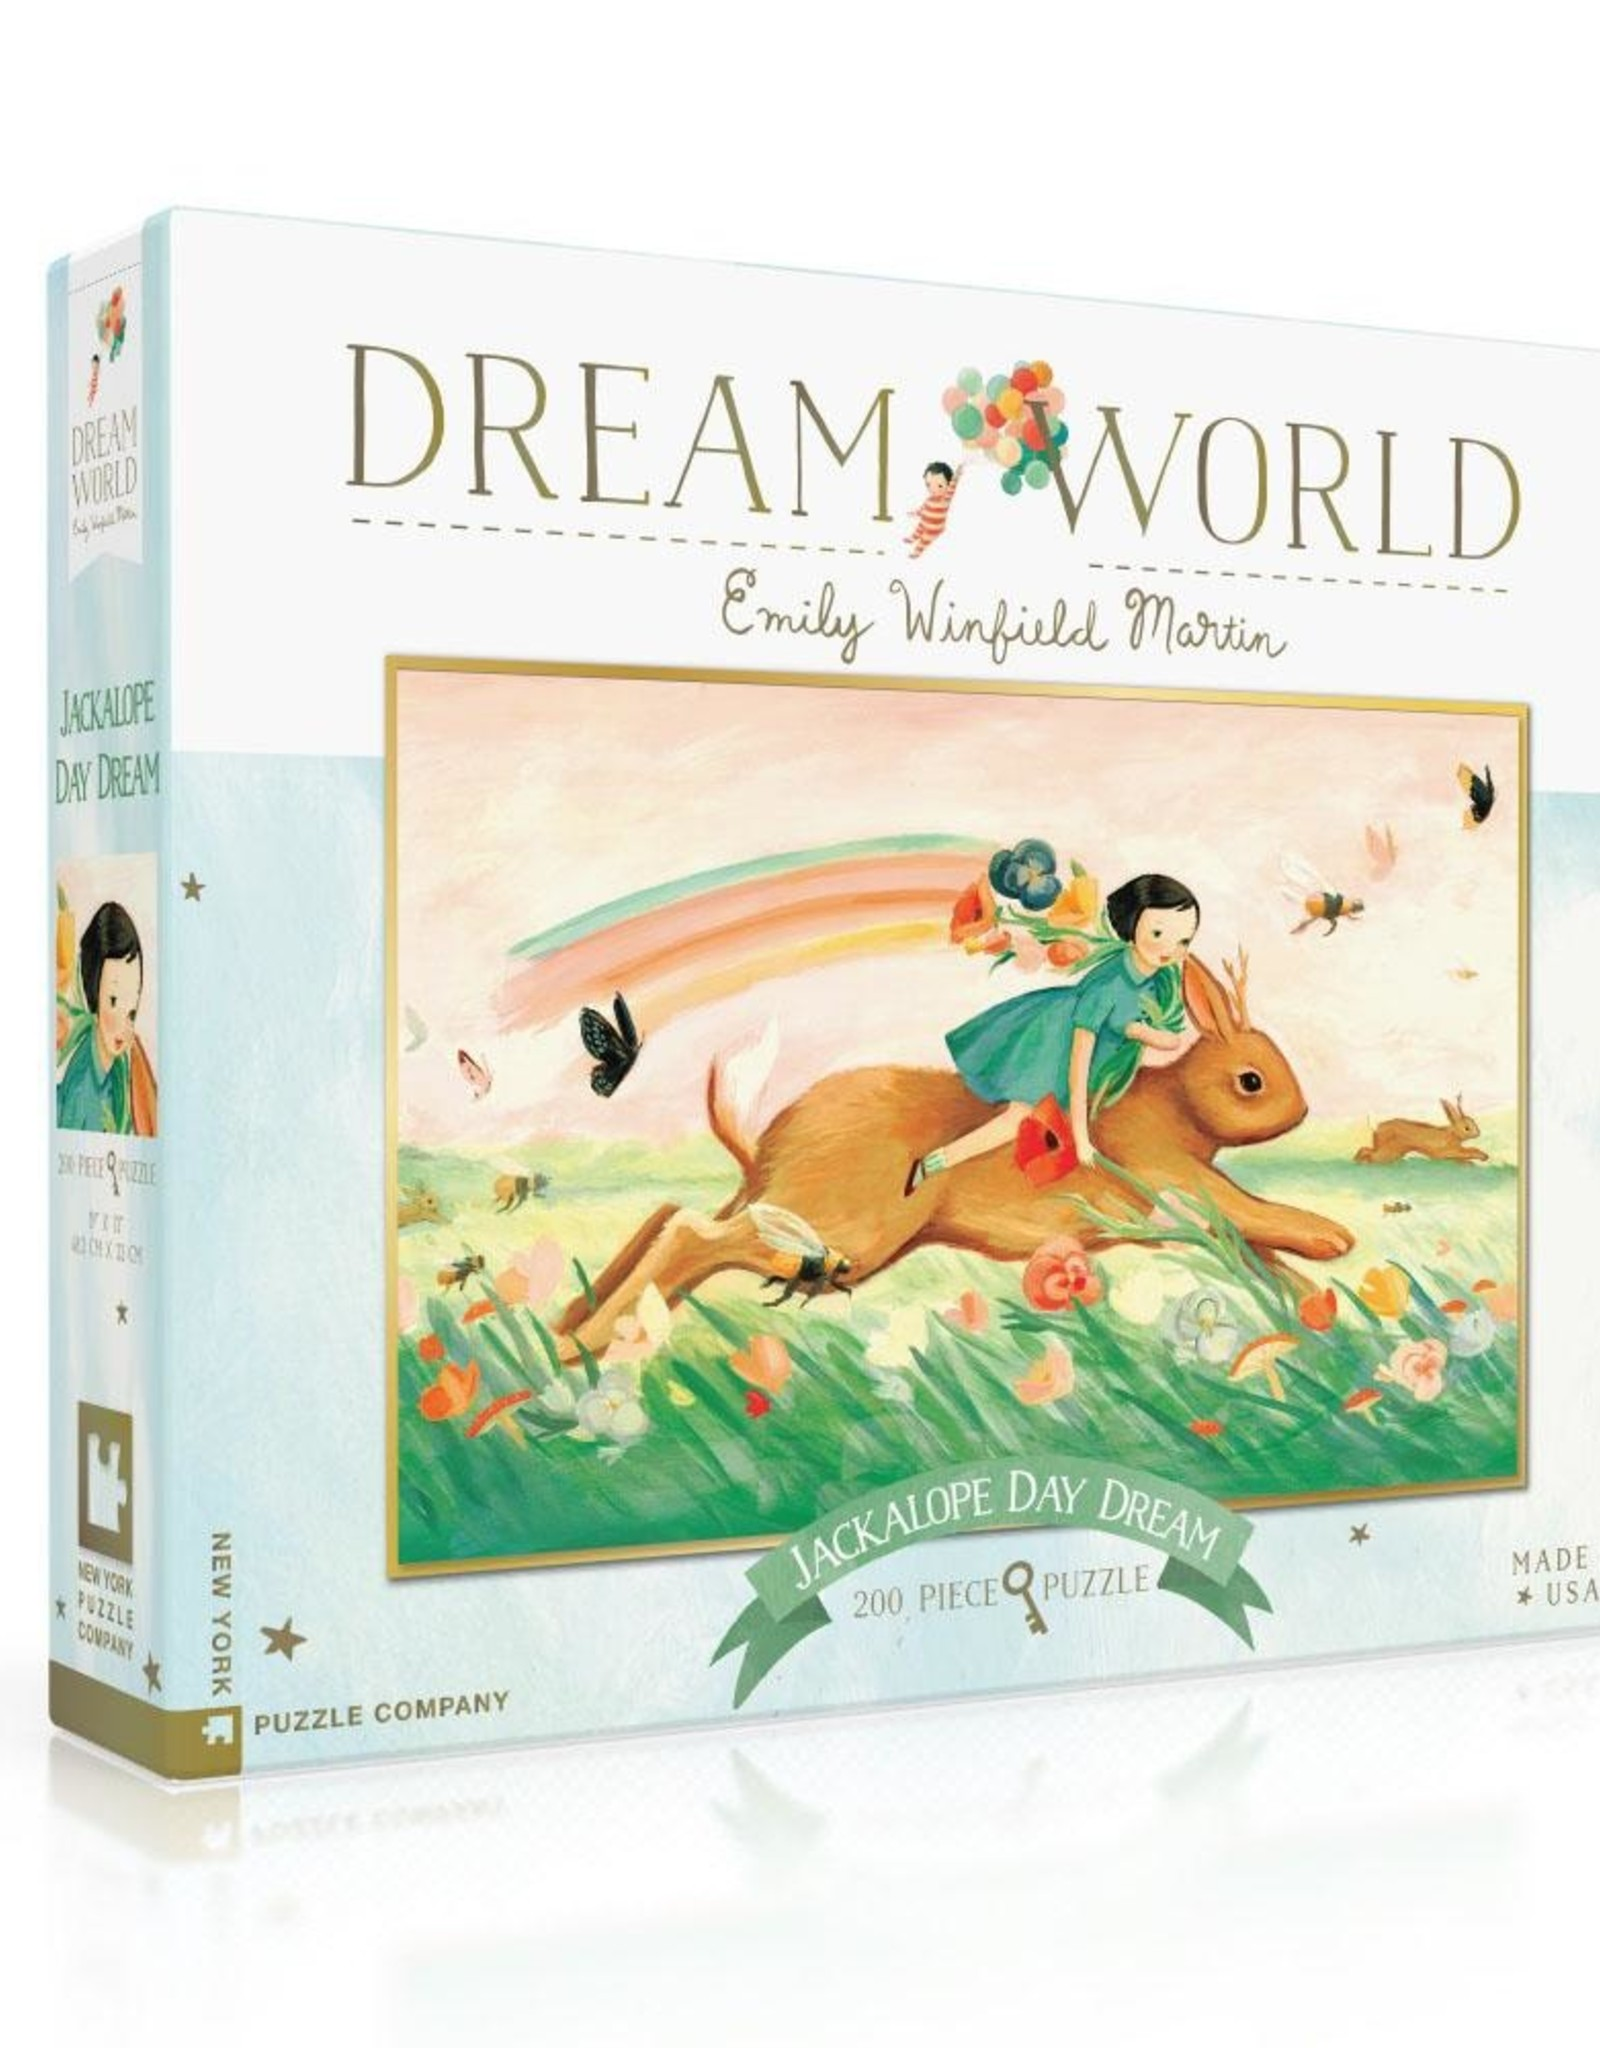 Dream World 200pce Puzzle - Jackalope Day Dream